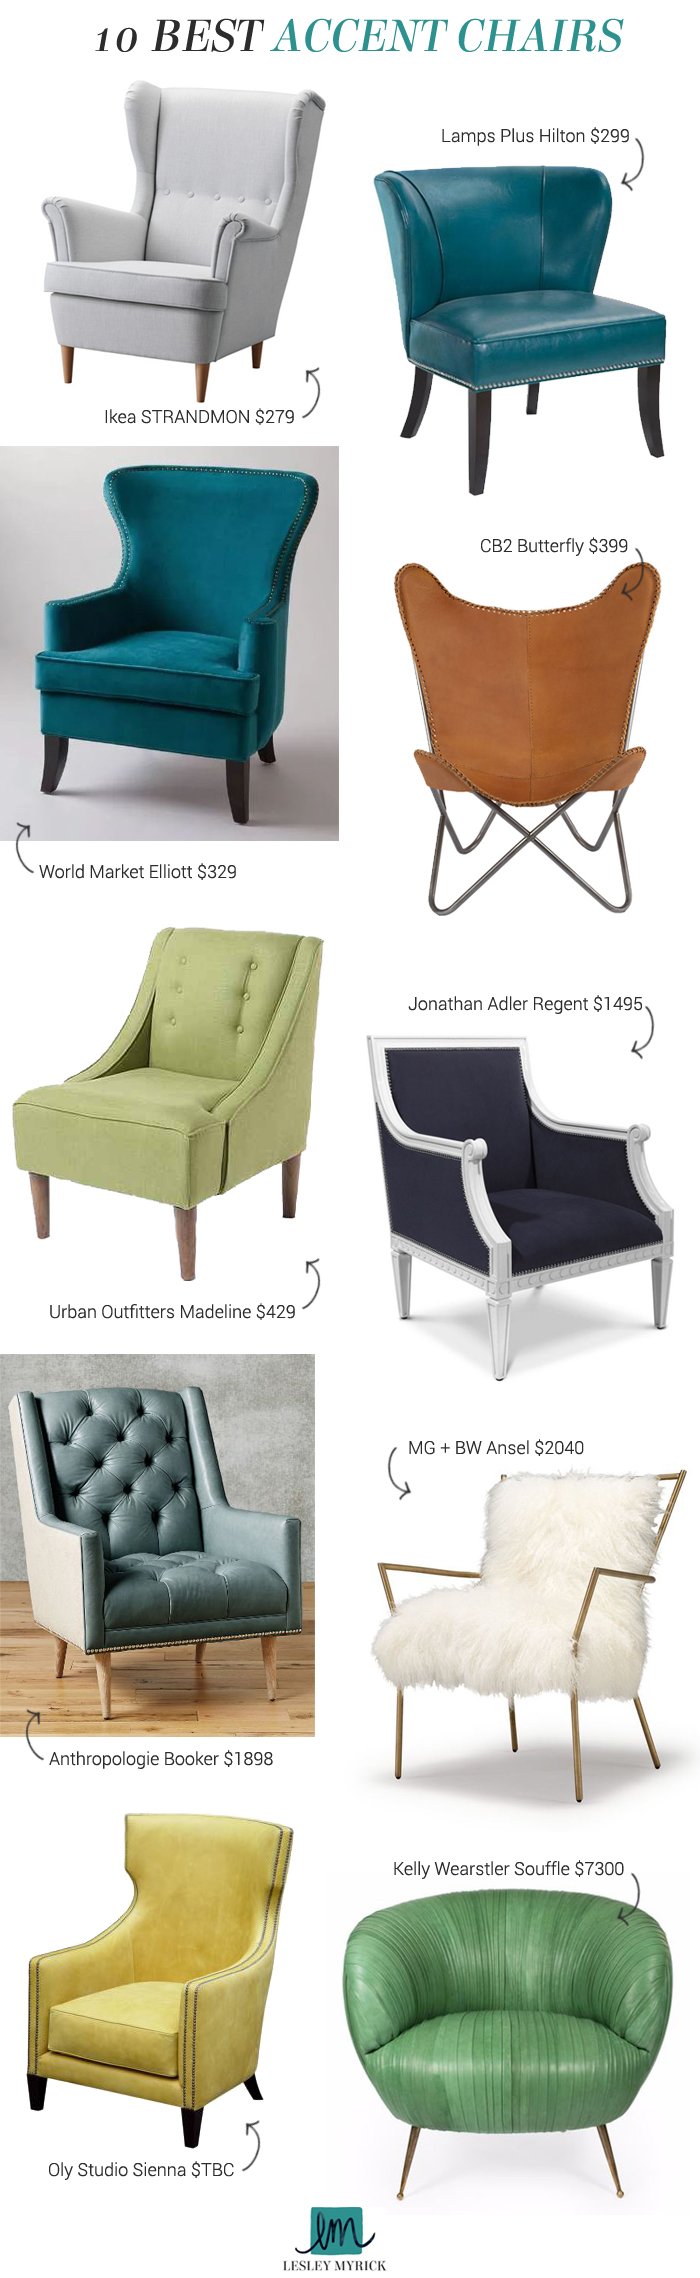 Lesley's Picks: 10 Best Accent Chairs